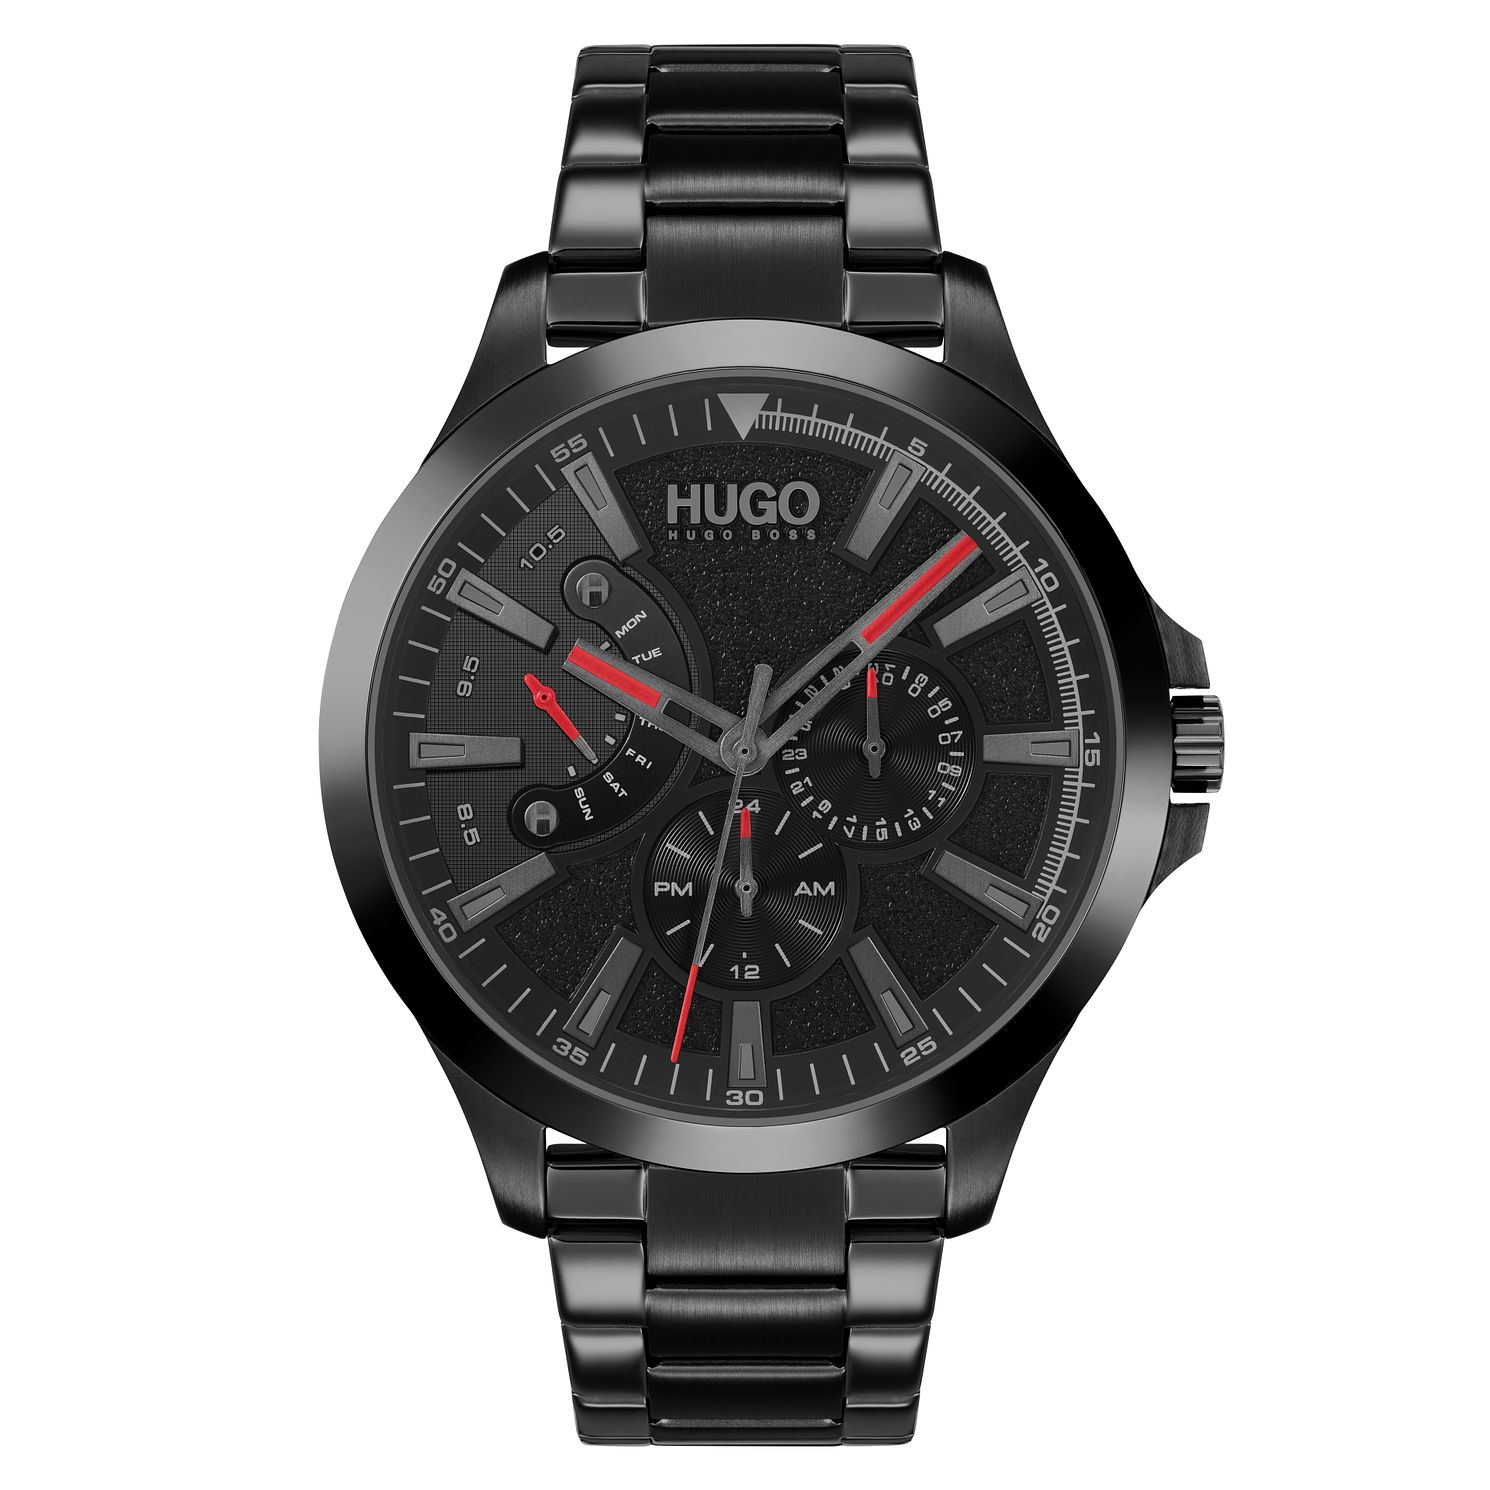 HUGO #LEAP Men's Black IP Bracelet Watch - Product number 1018469